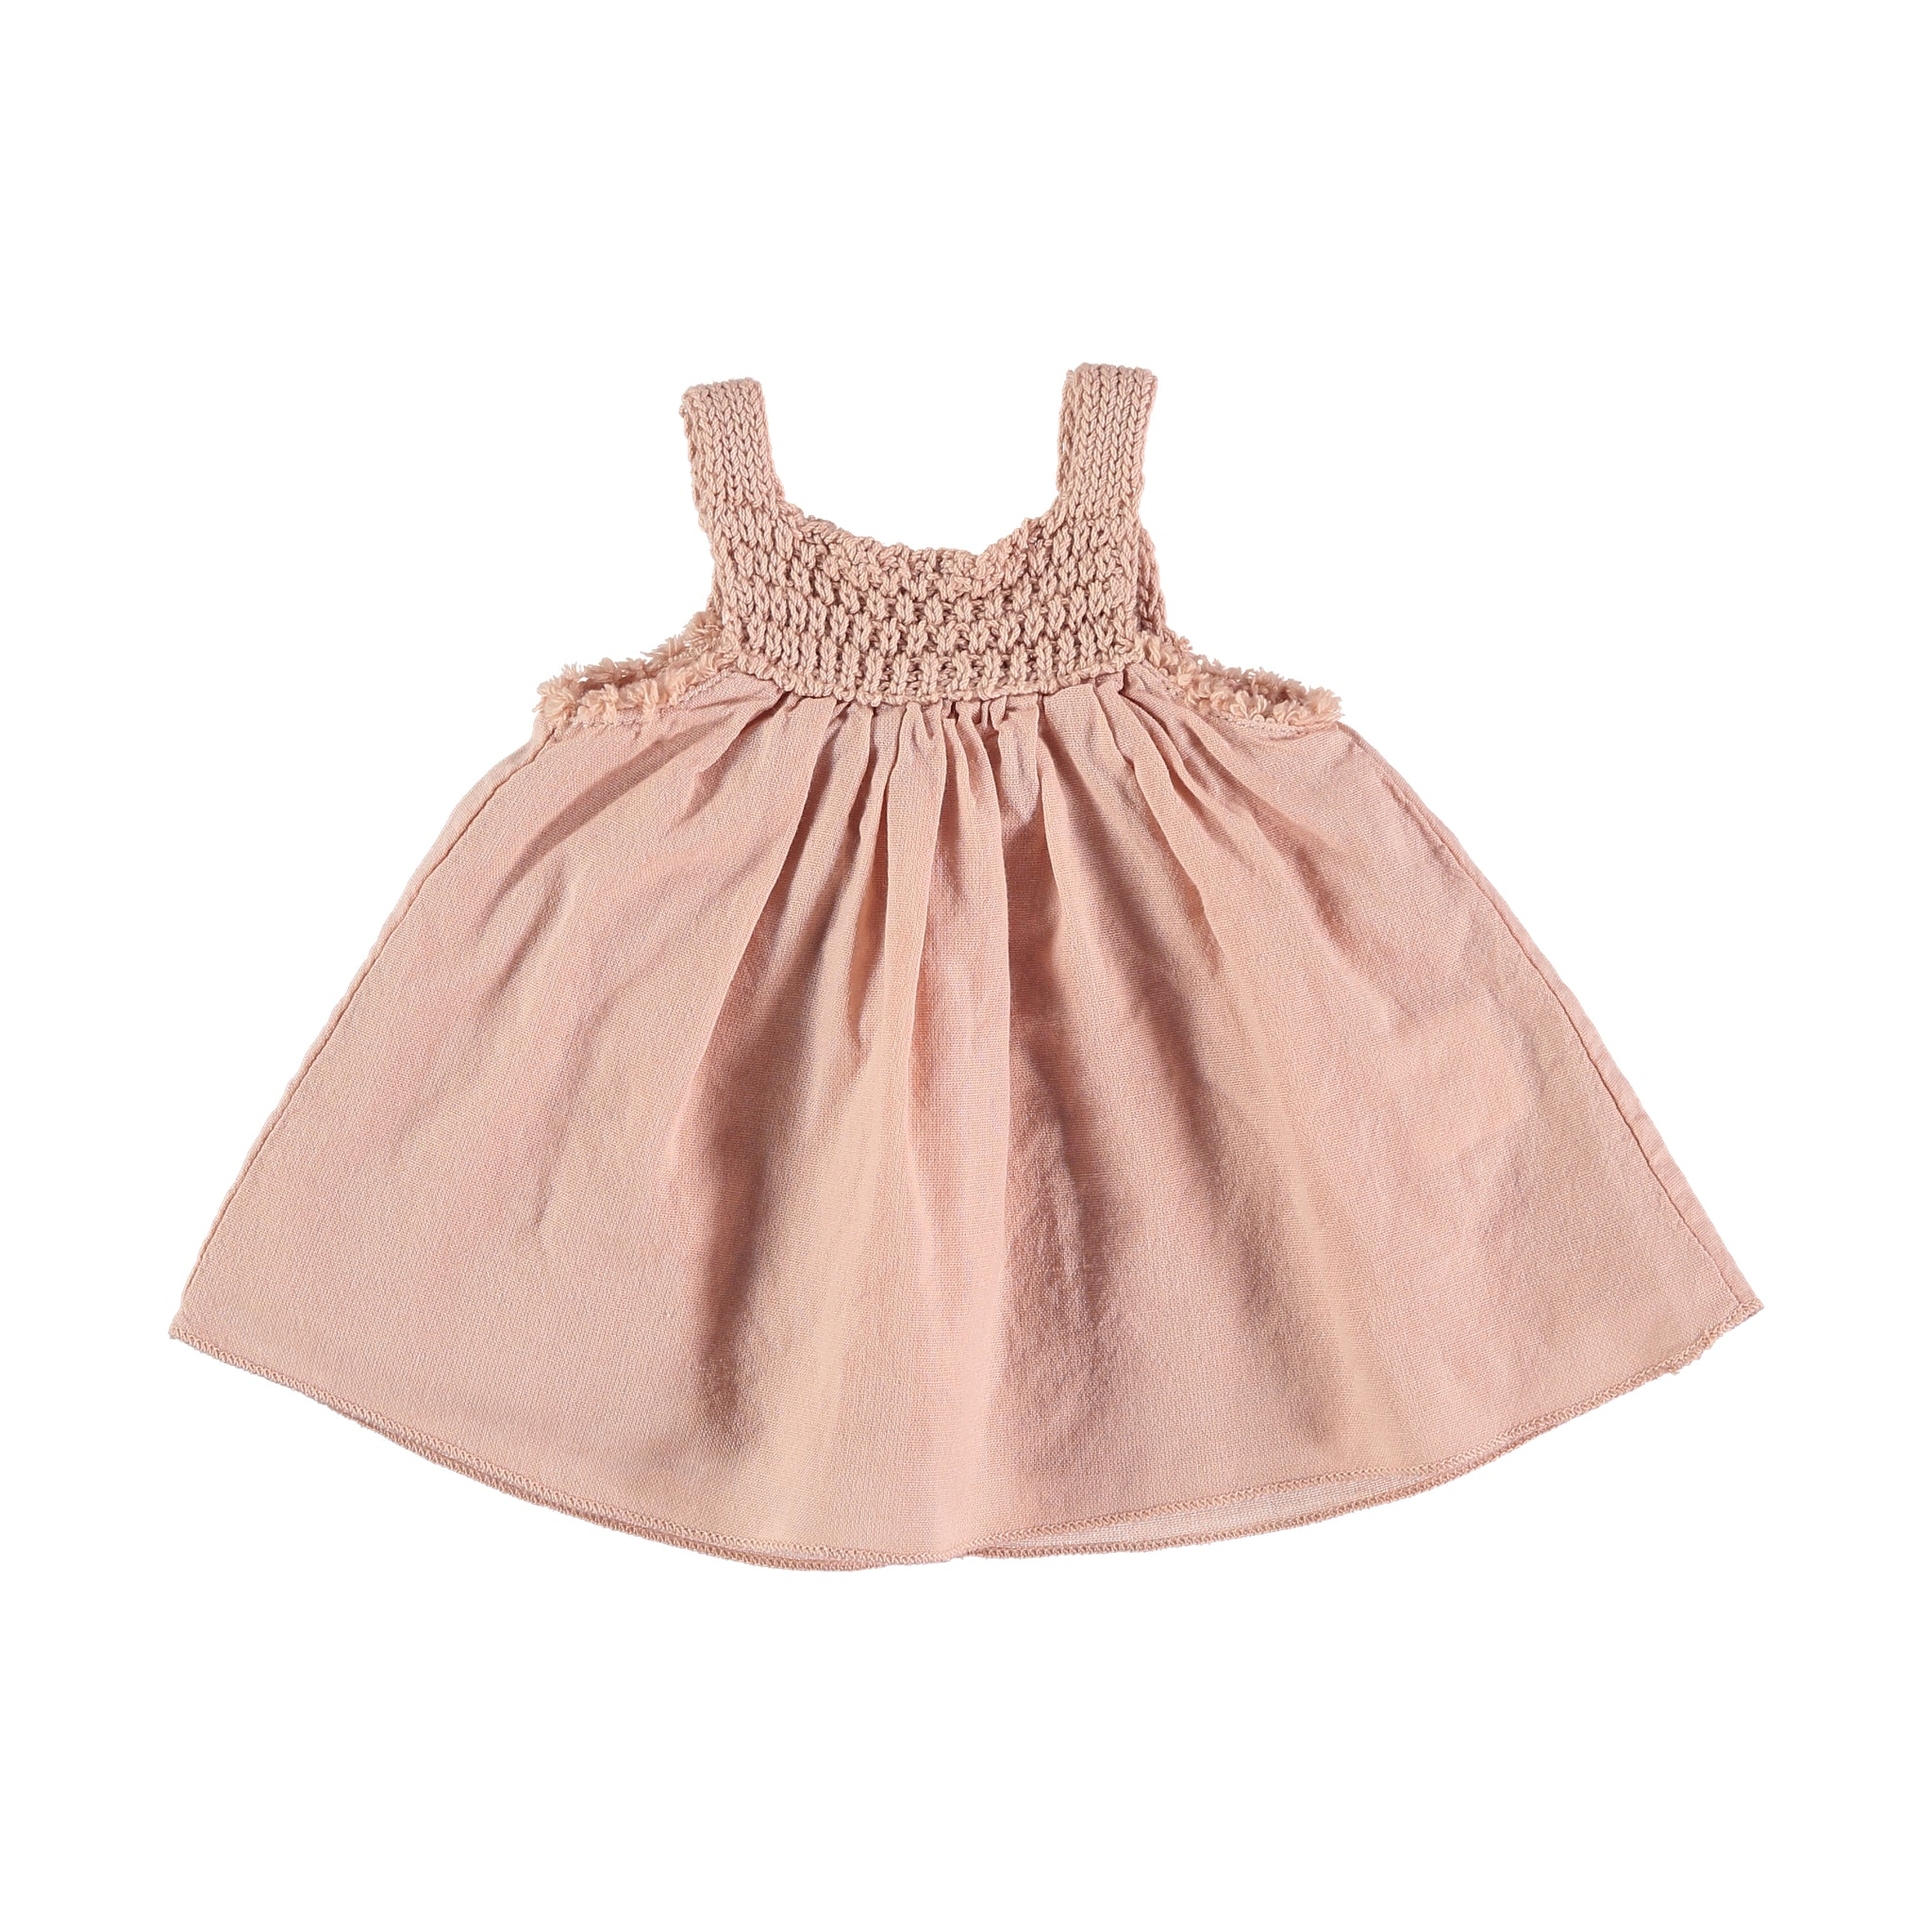 Paris baby dress - rose